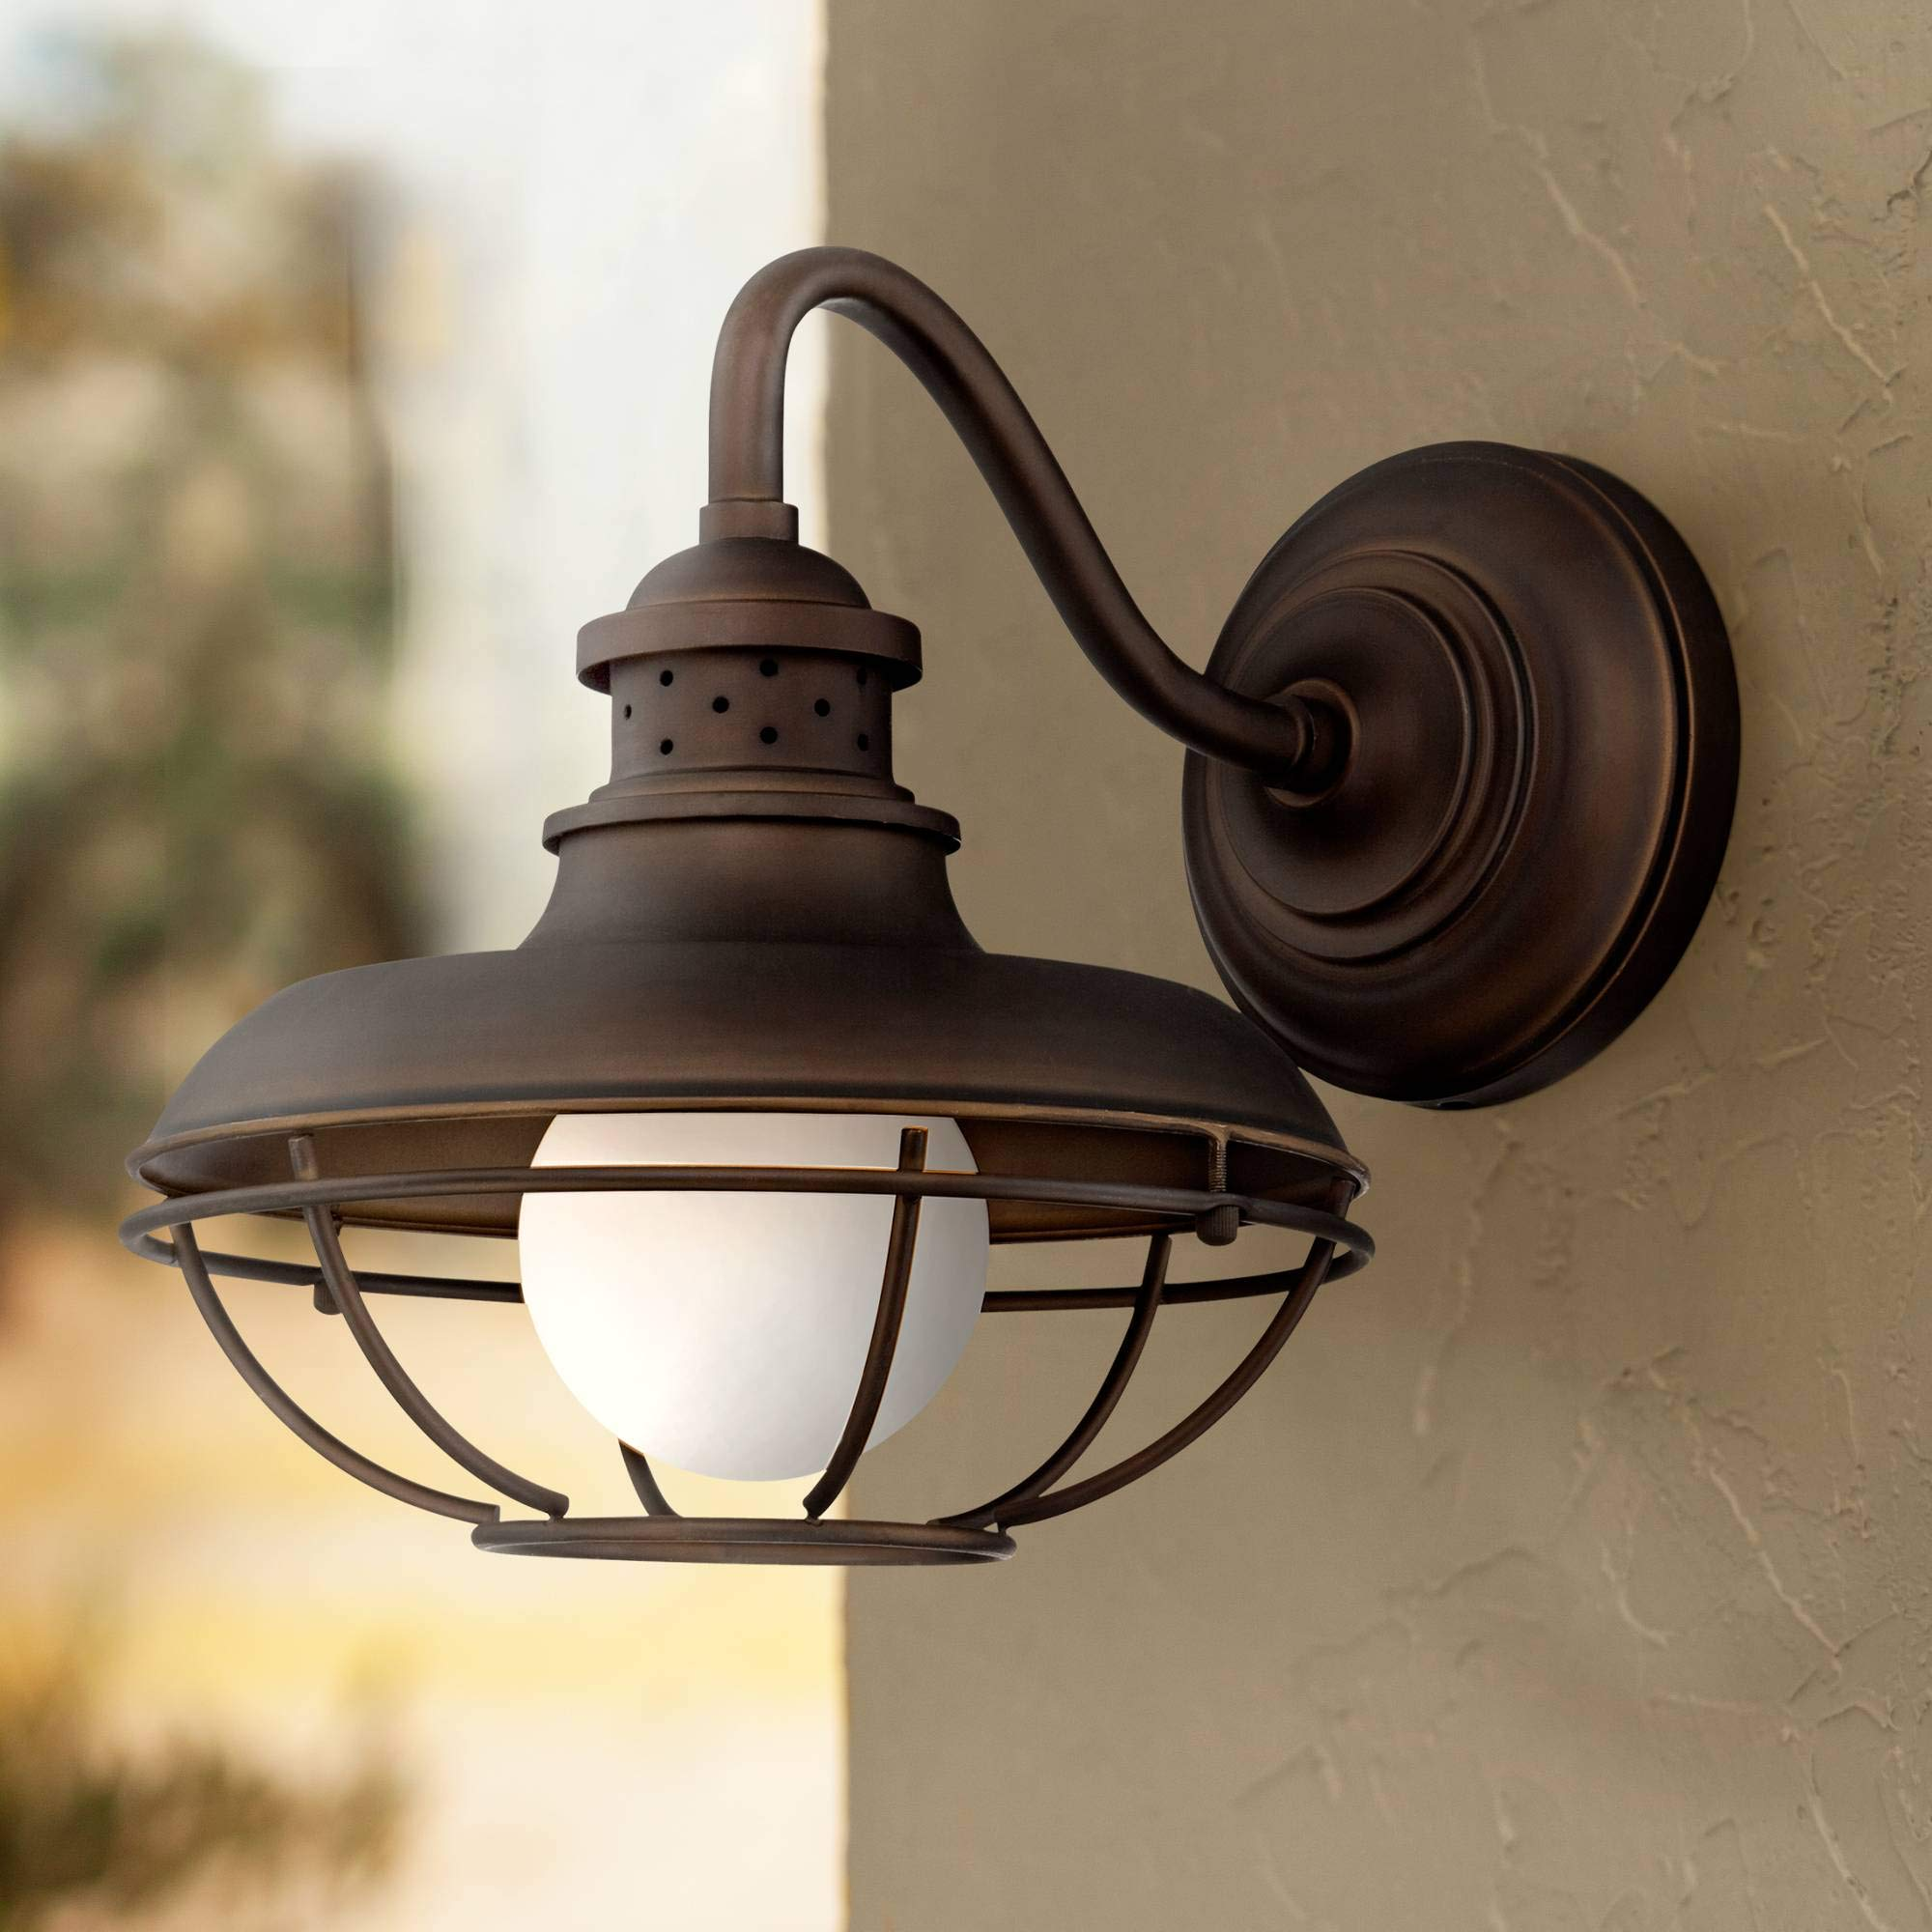 Franklin Park 13'' High Bronze Metal Cage Outdoor Wall Light - Franklin Iron Works